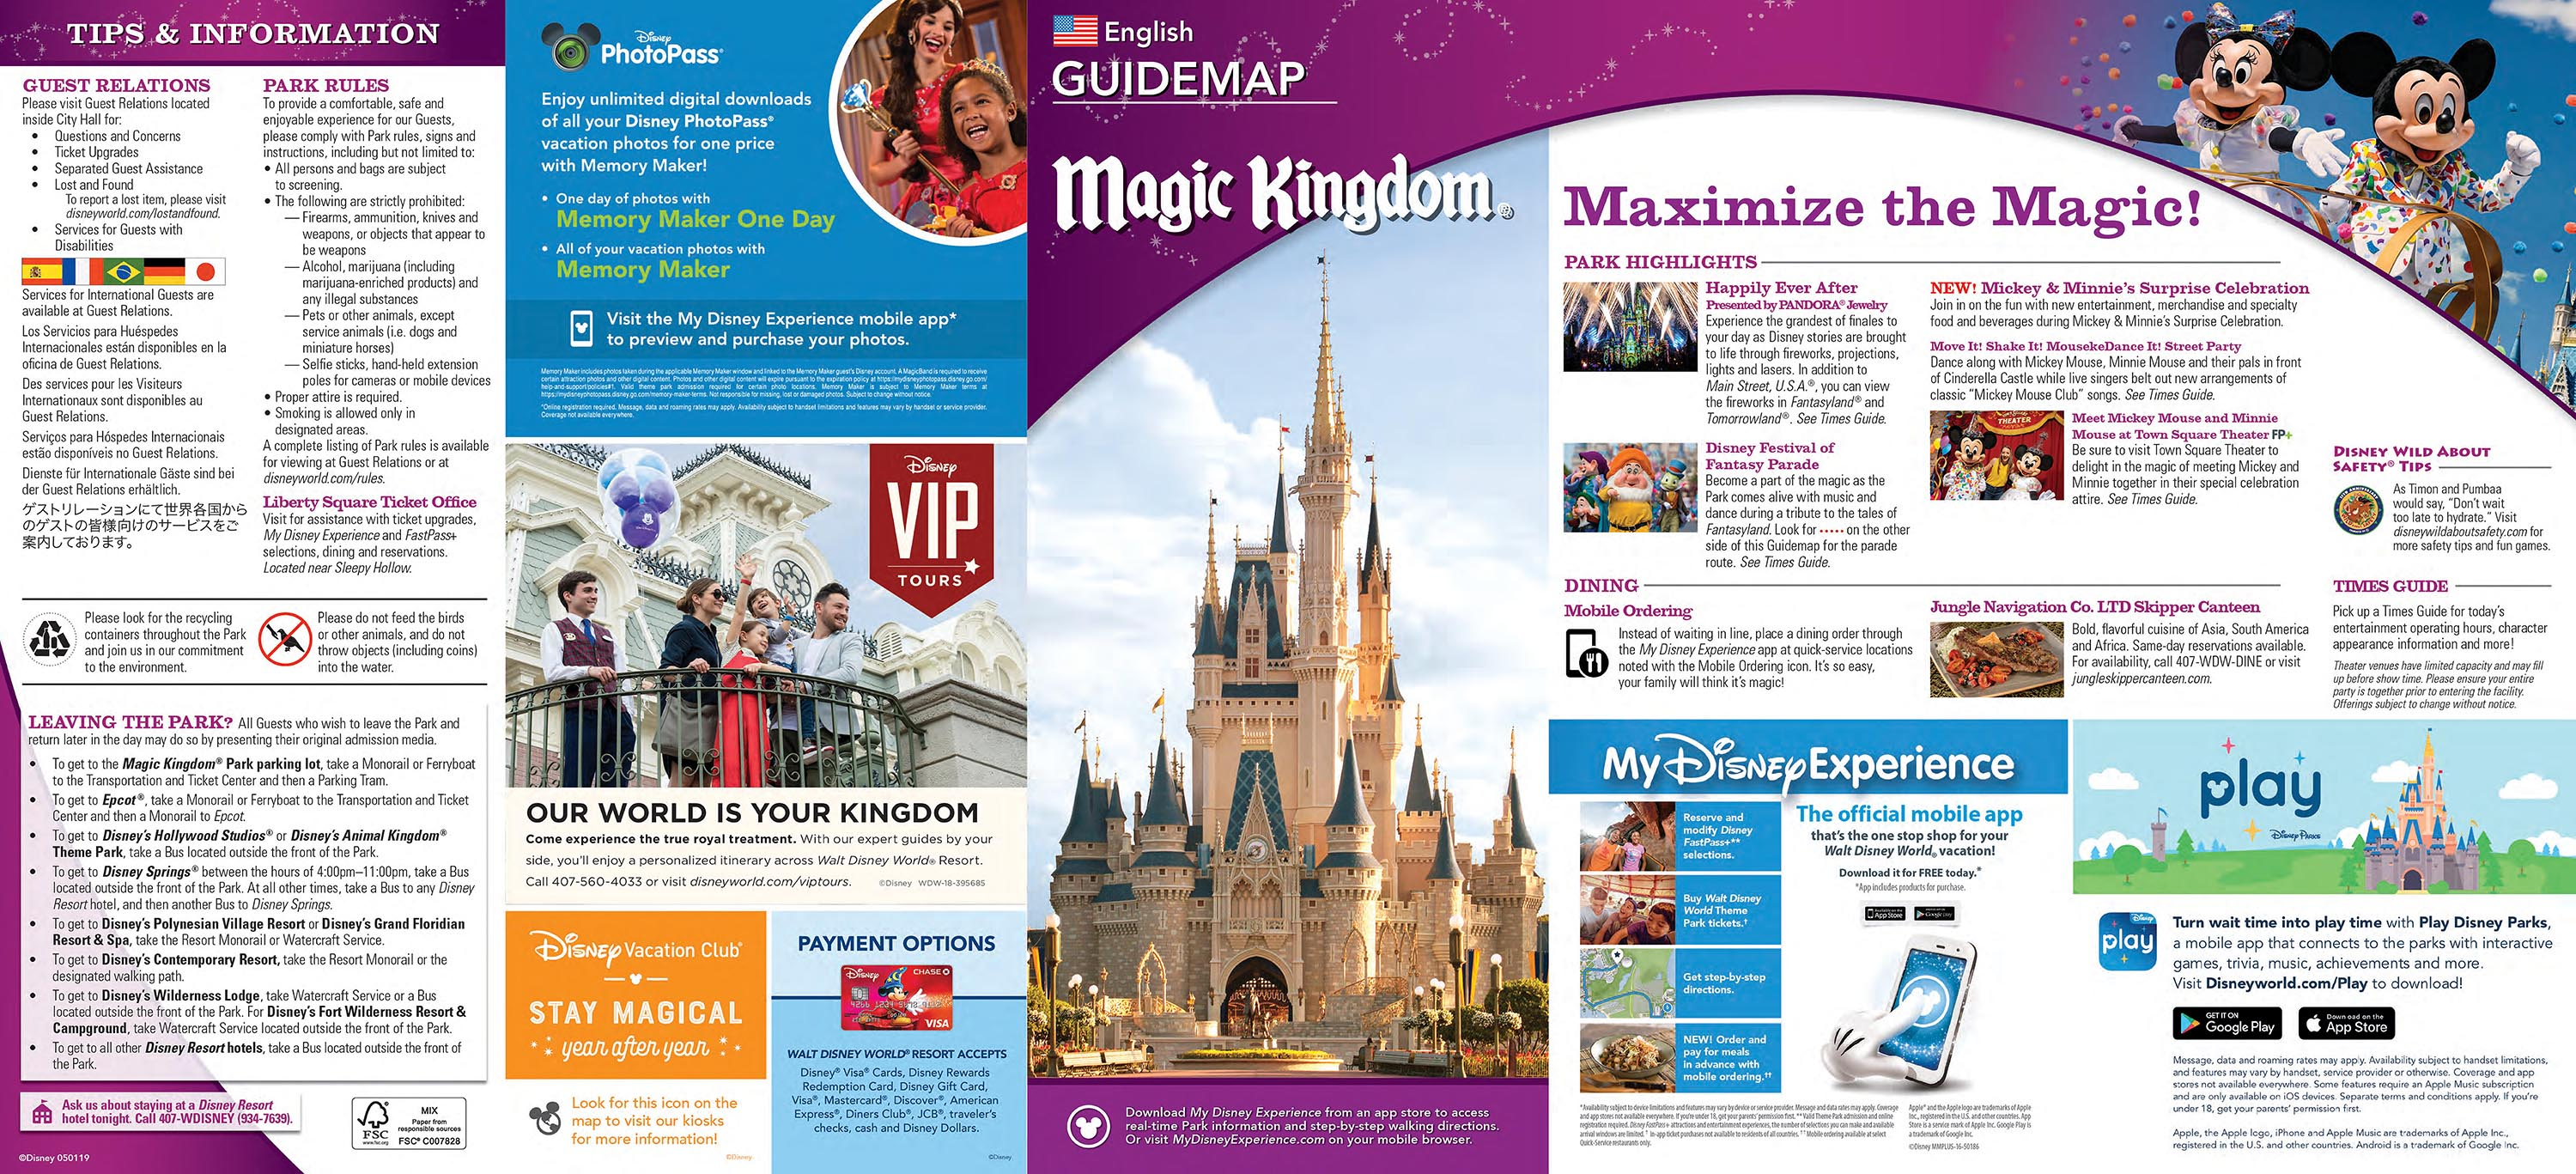 Epcot Disney World Park Guide Map Candlelight Processional Cover